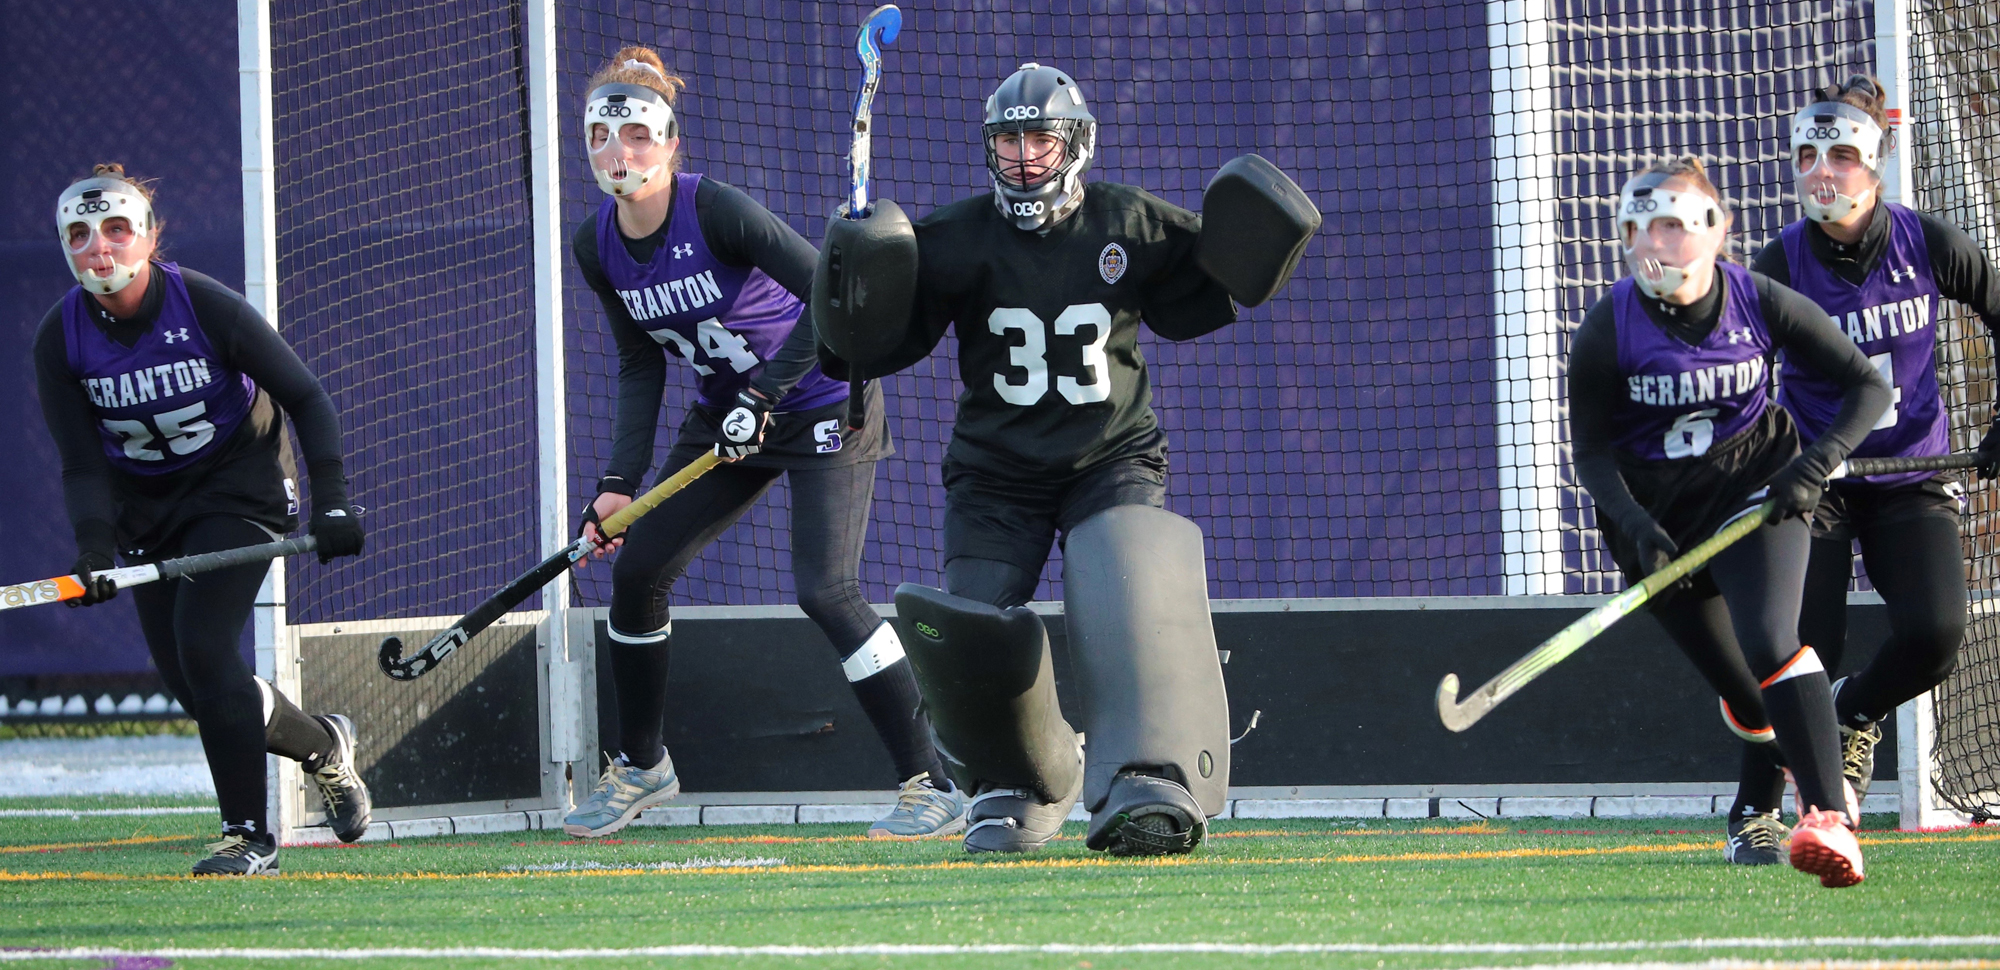 The University of Scranton field hockey team saw their historic season come to end in the first round of the NCAA Tournament on Wednesday afternoon.